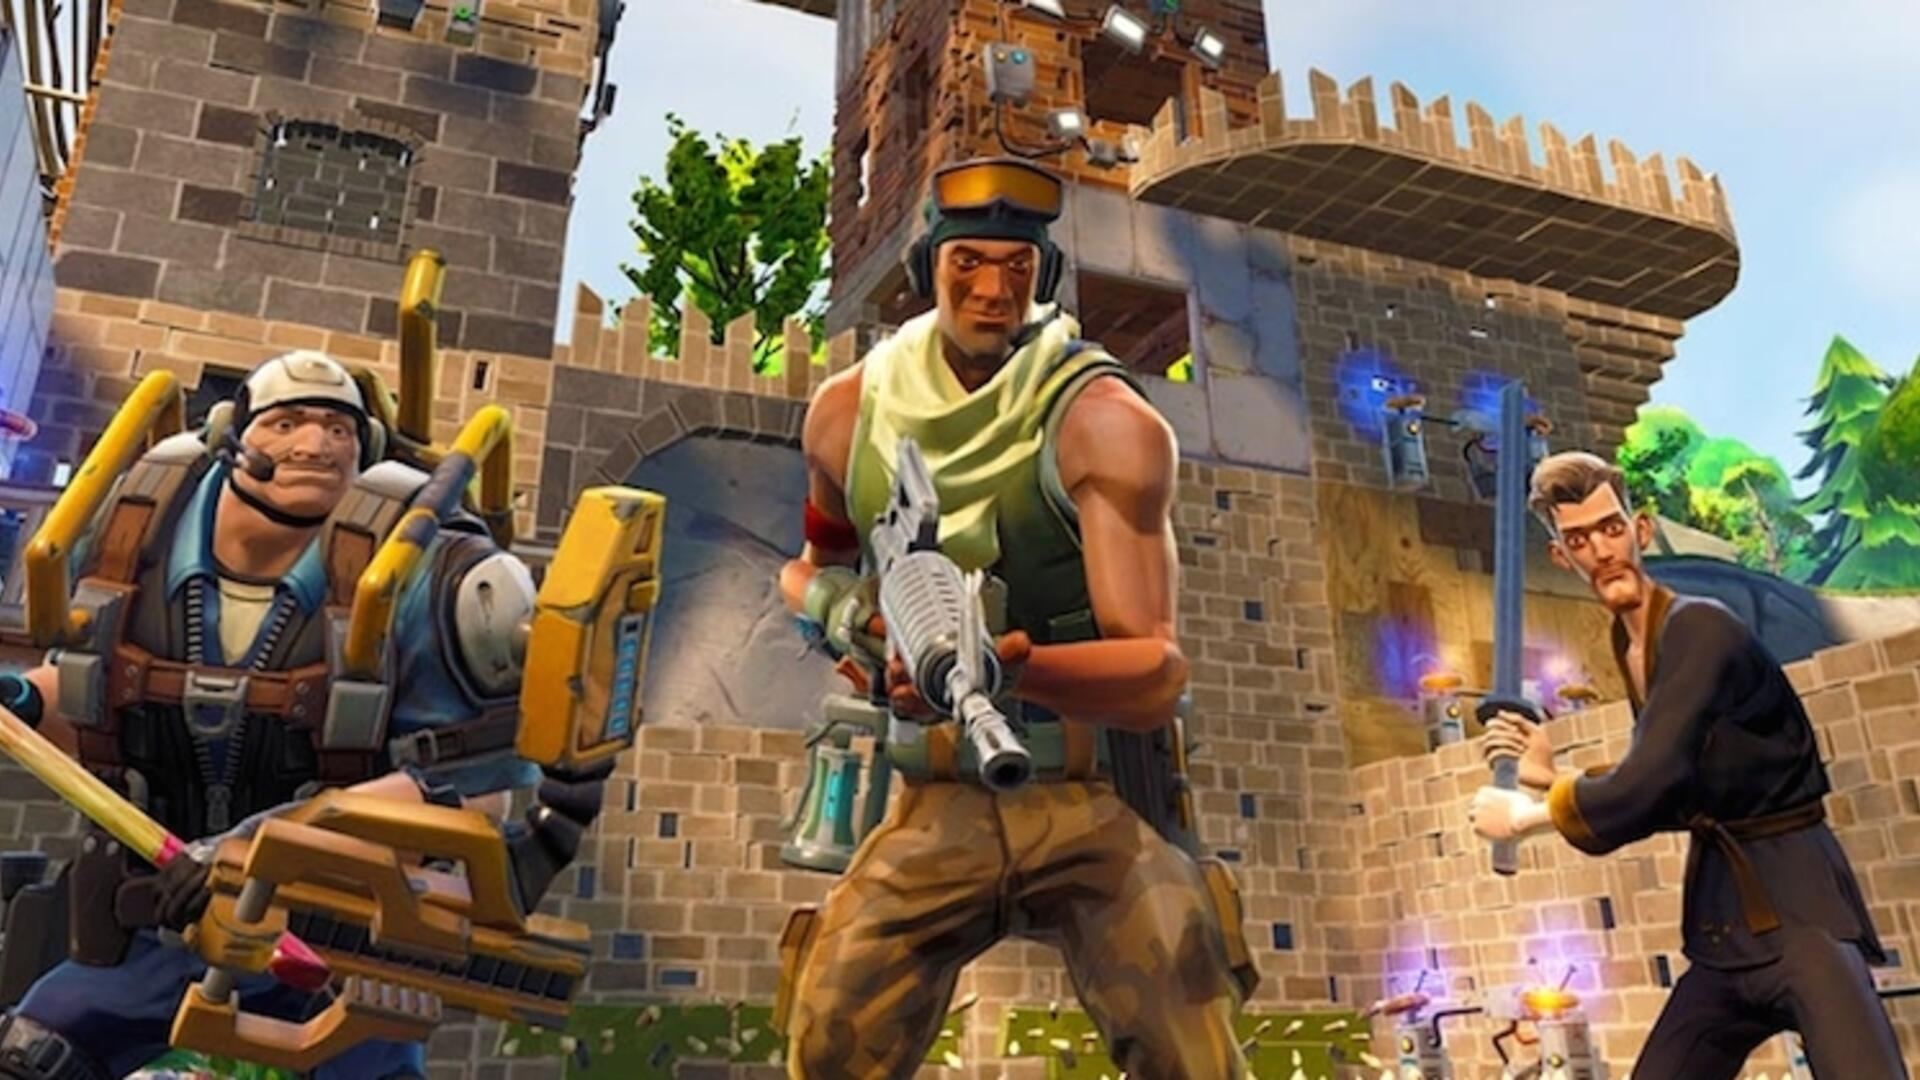 Fortnite Battle Royale Brings PUBG-Style PvP to Consoles First, Will be Free-to-Play